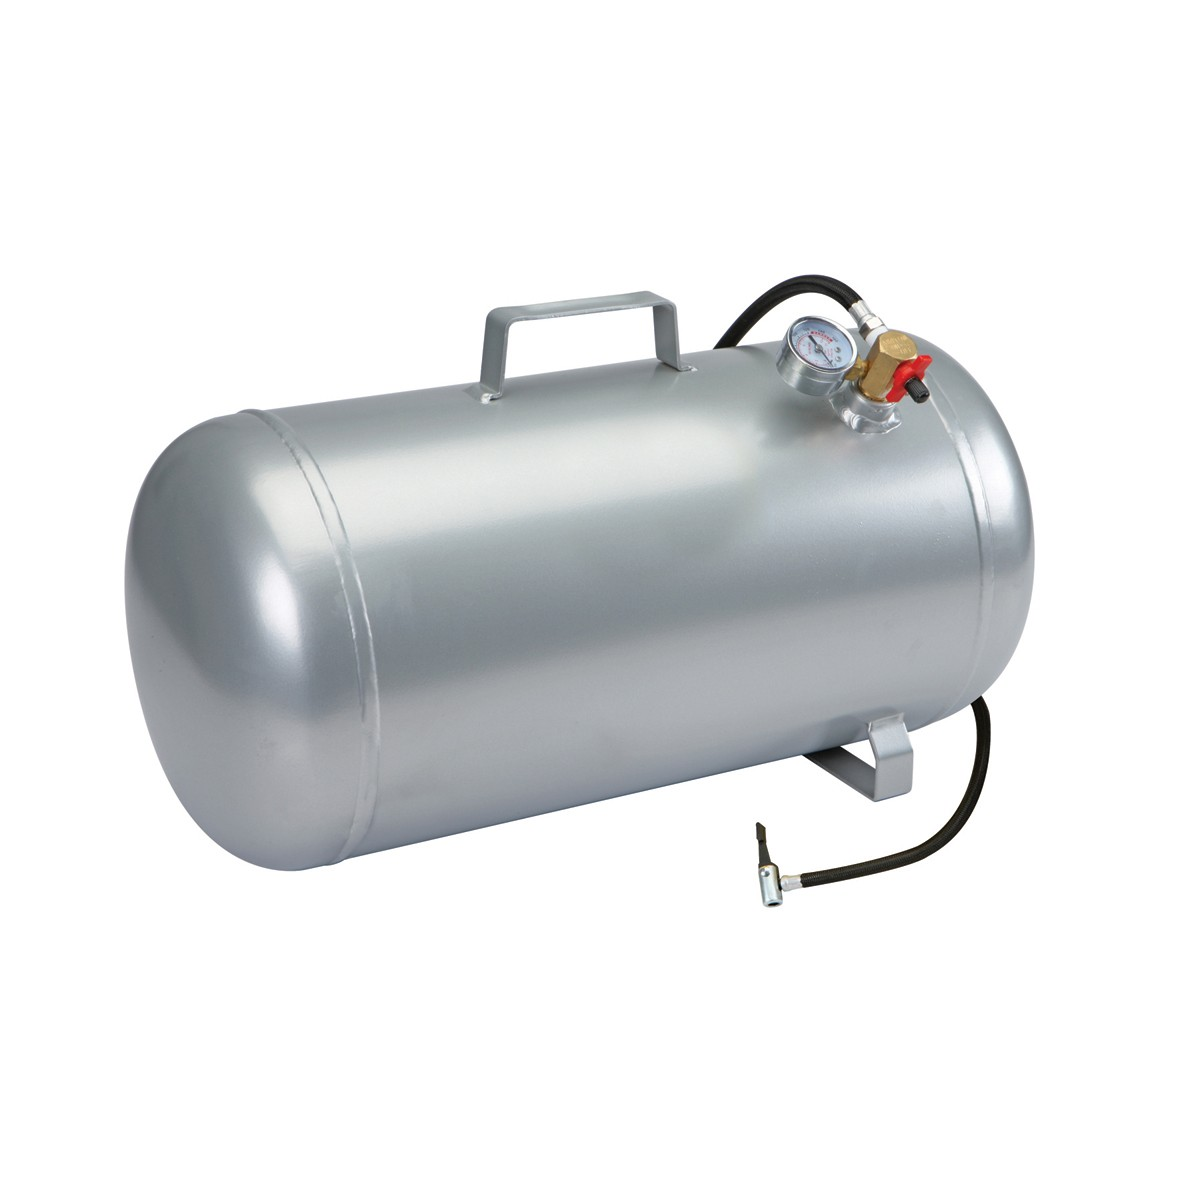 7 gal. Portable Aluminum Air Tank